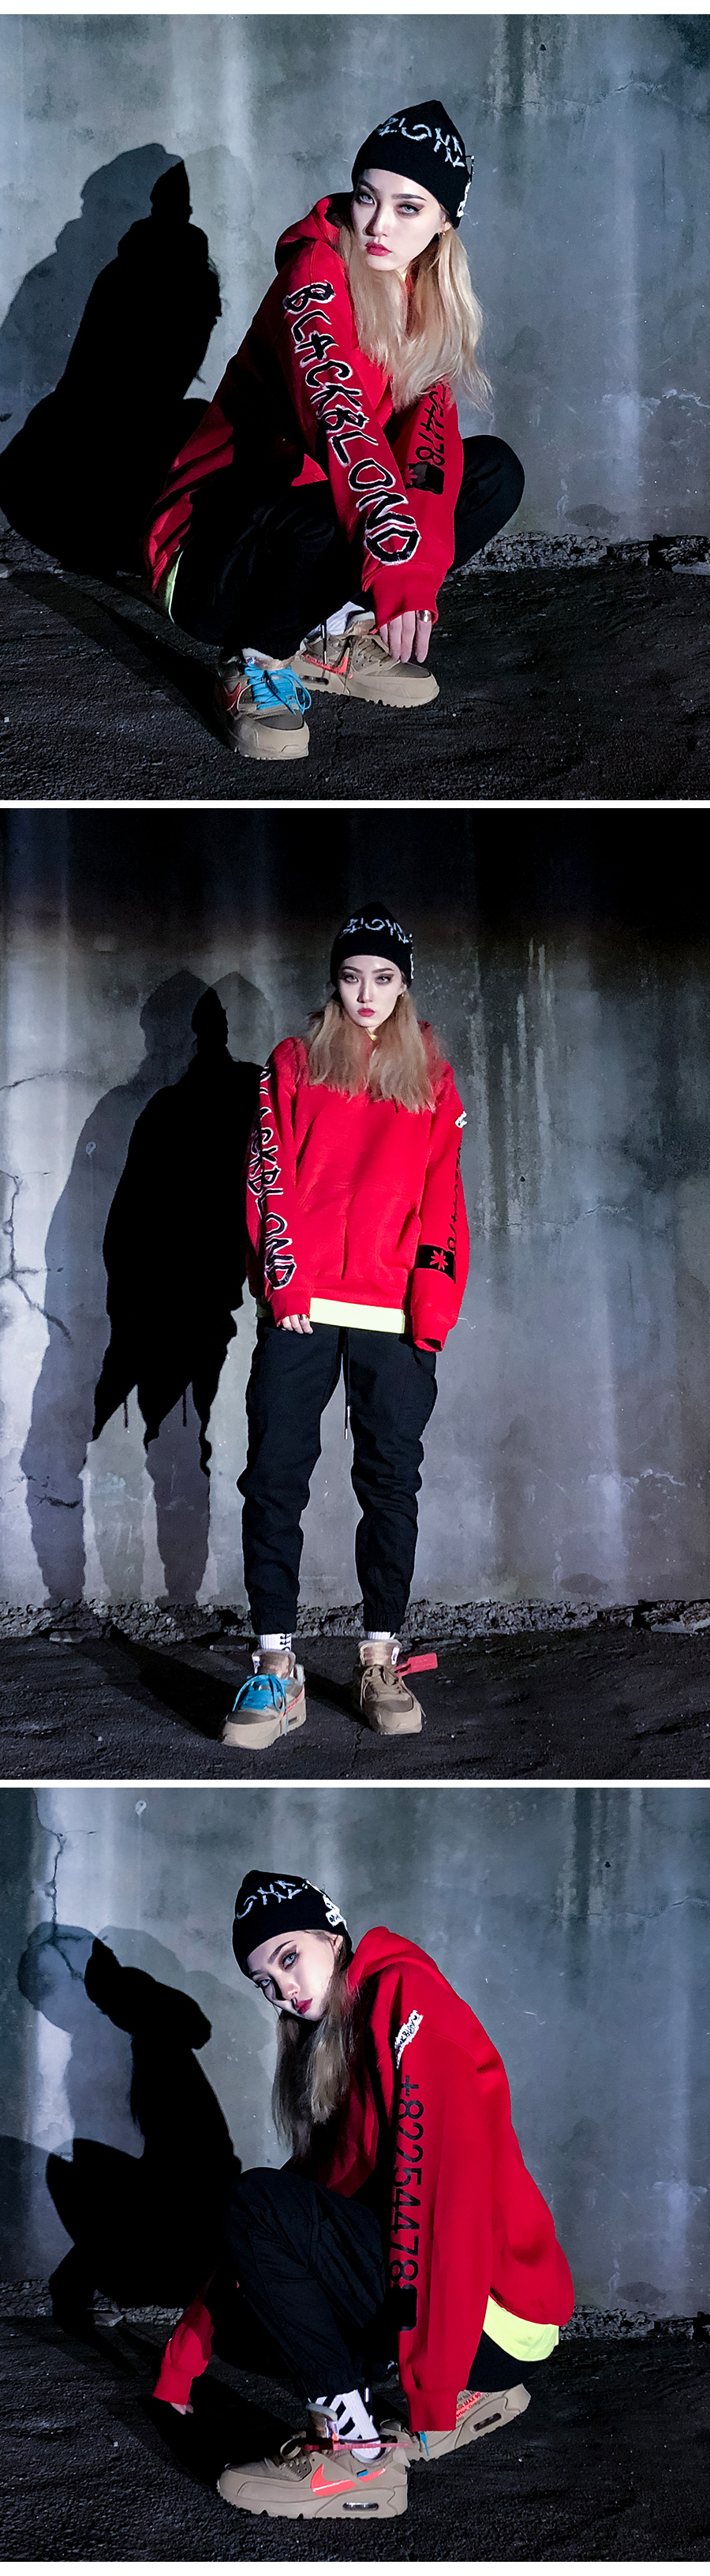 BBD-Graffiti-Number-Hoodie-%28Red%29-2.jpg